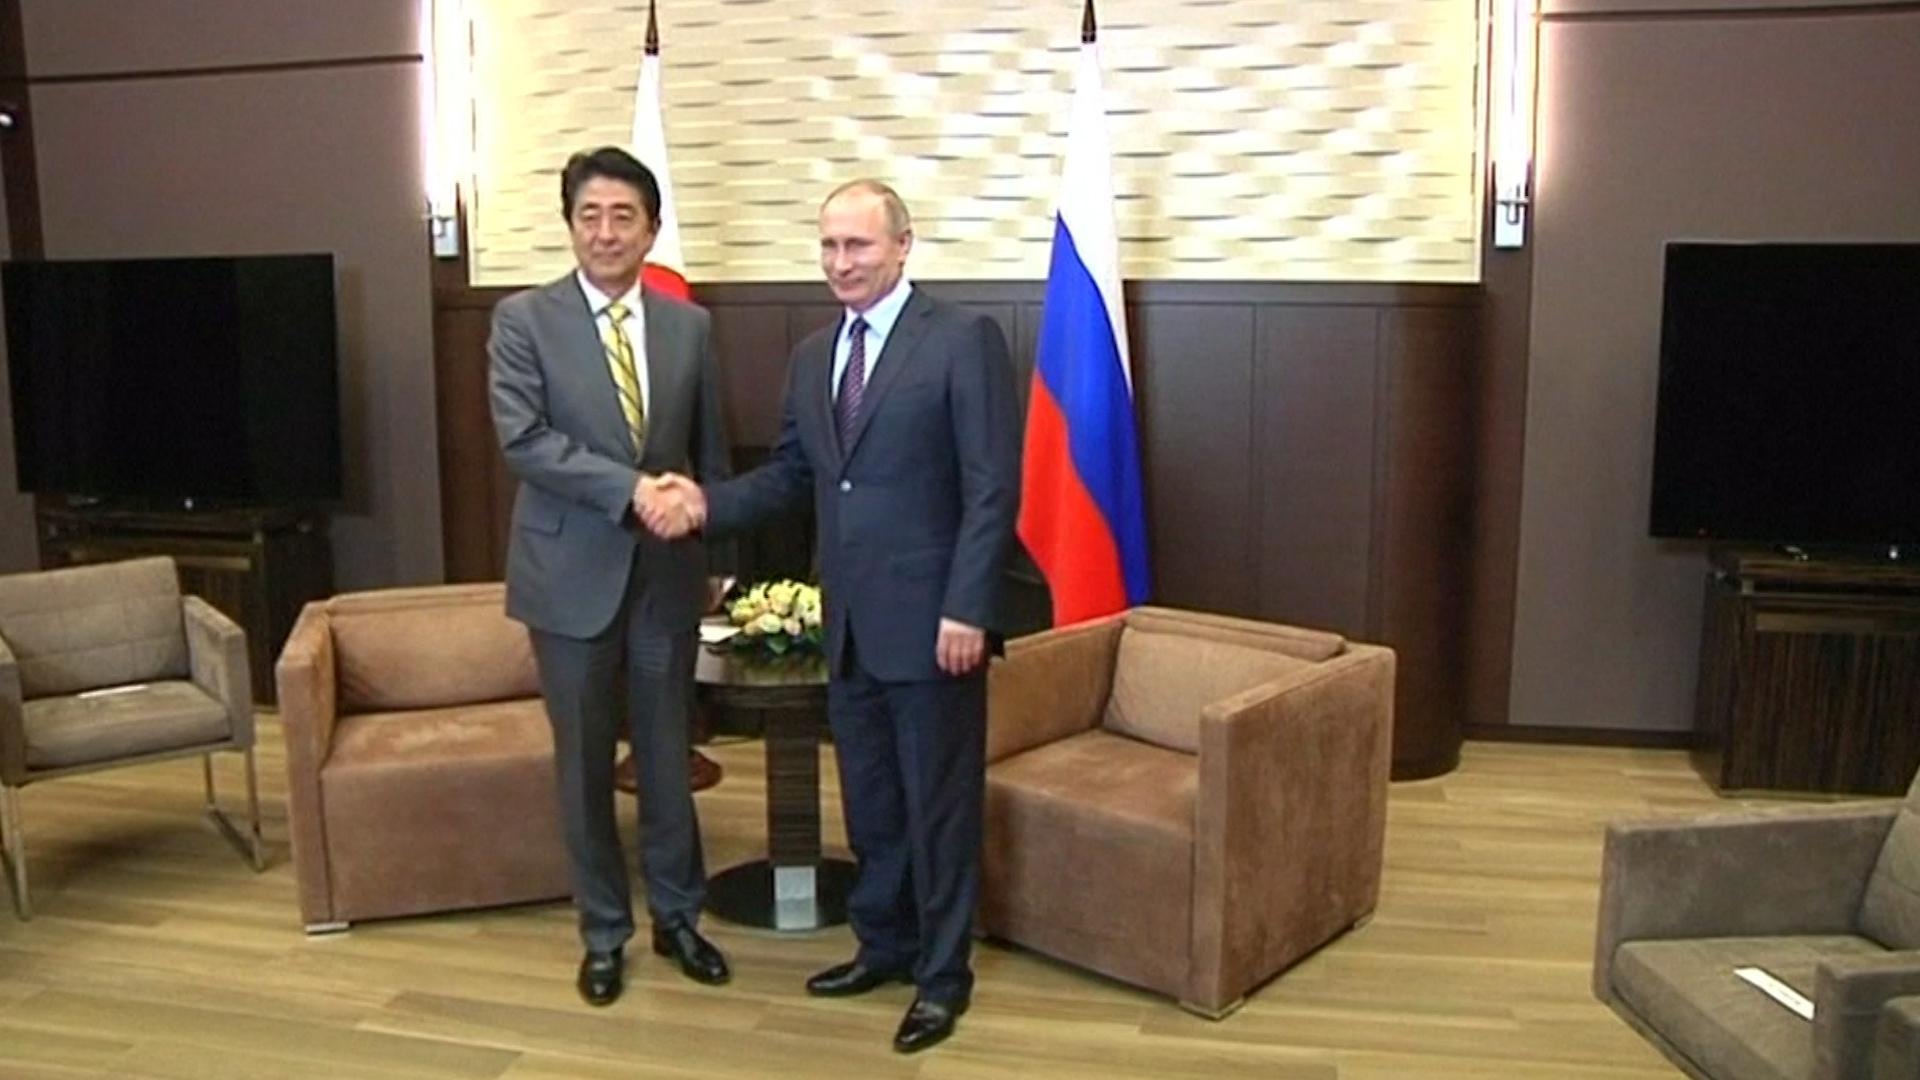 Japan And Russia Hold Talks In Sochi